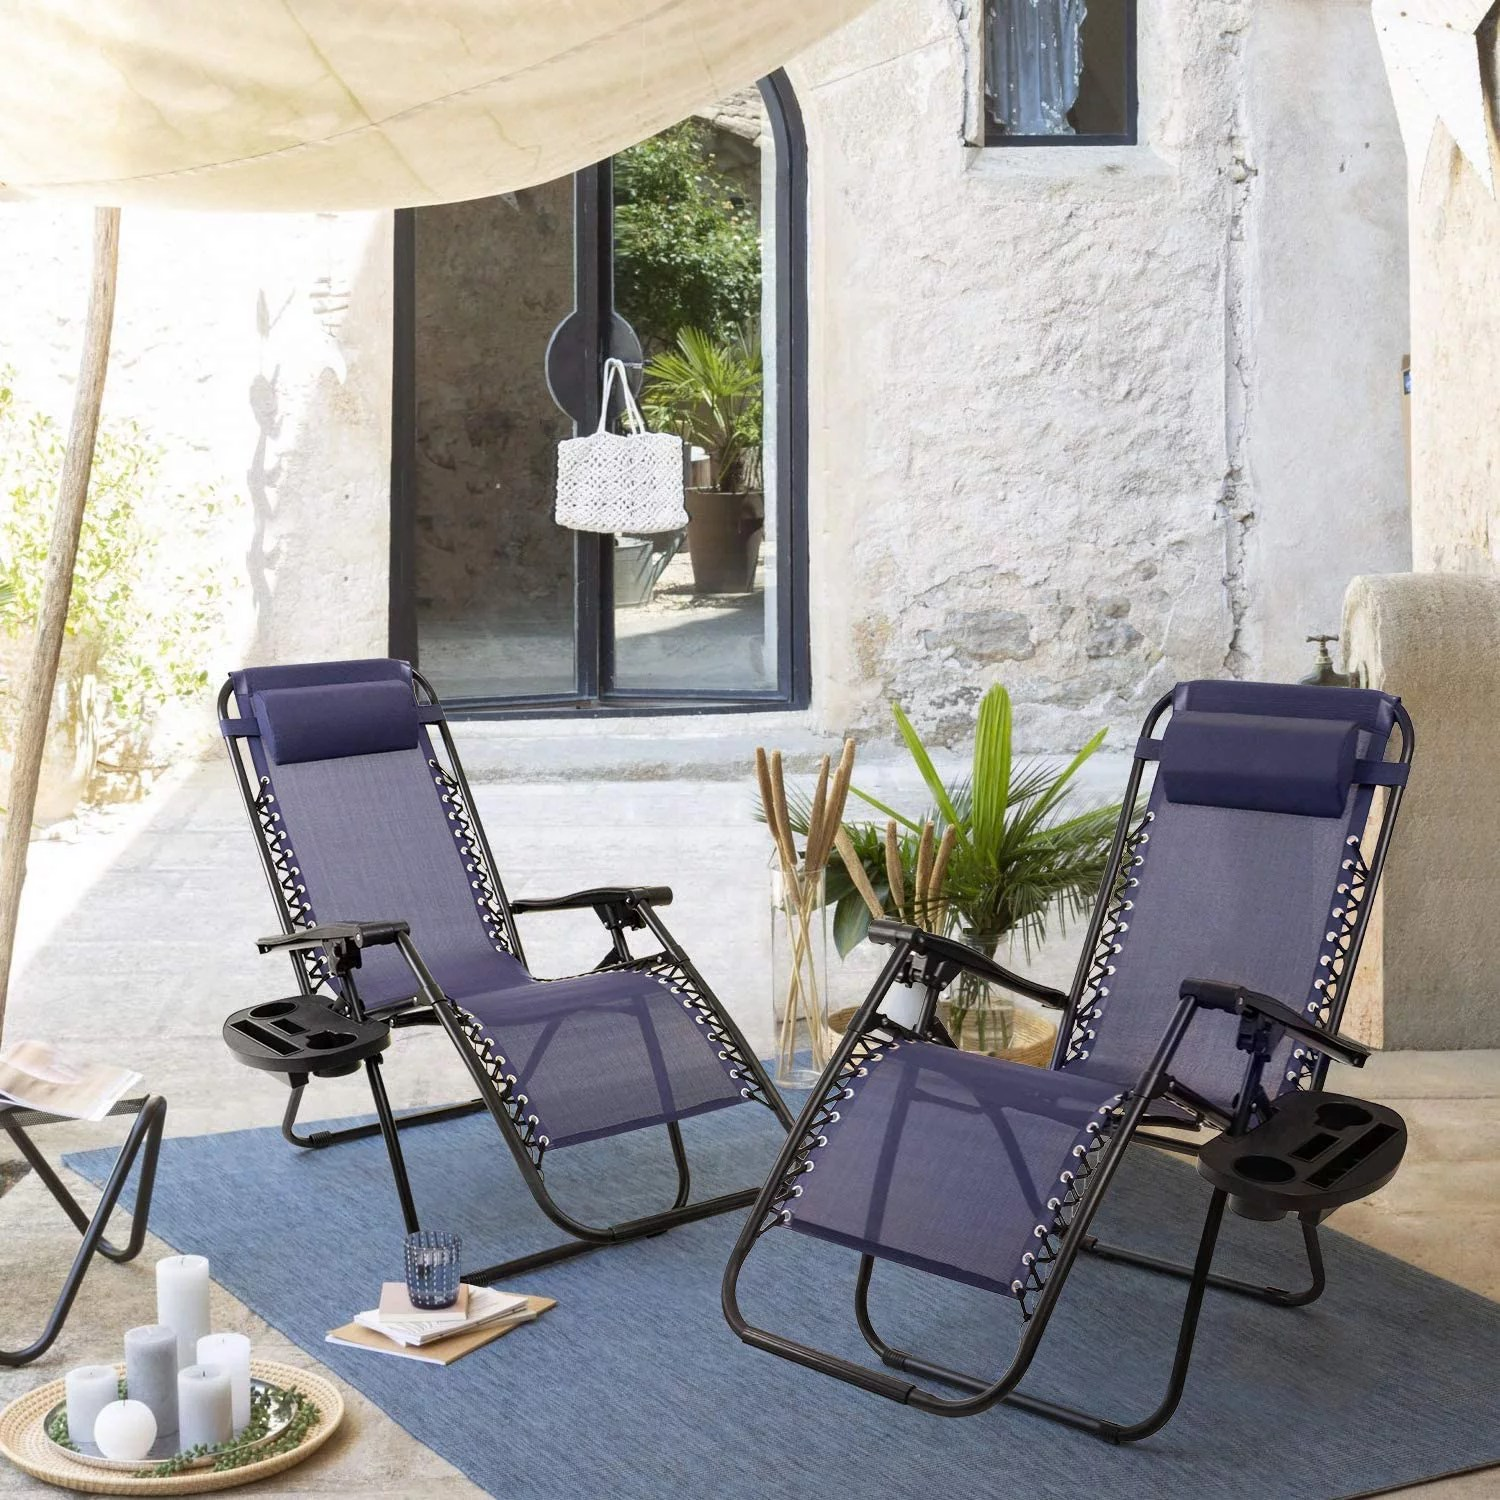 vineego zero gravity chair set of 2 camp reclining lounge chairs outdoor lounge patio chair with adjustable pillow 2 pack blue walmart com